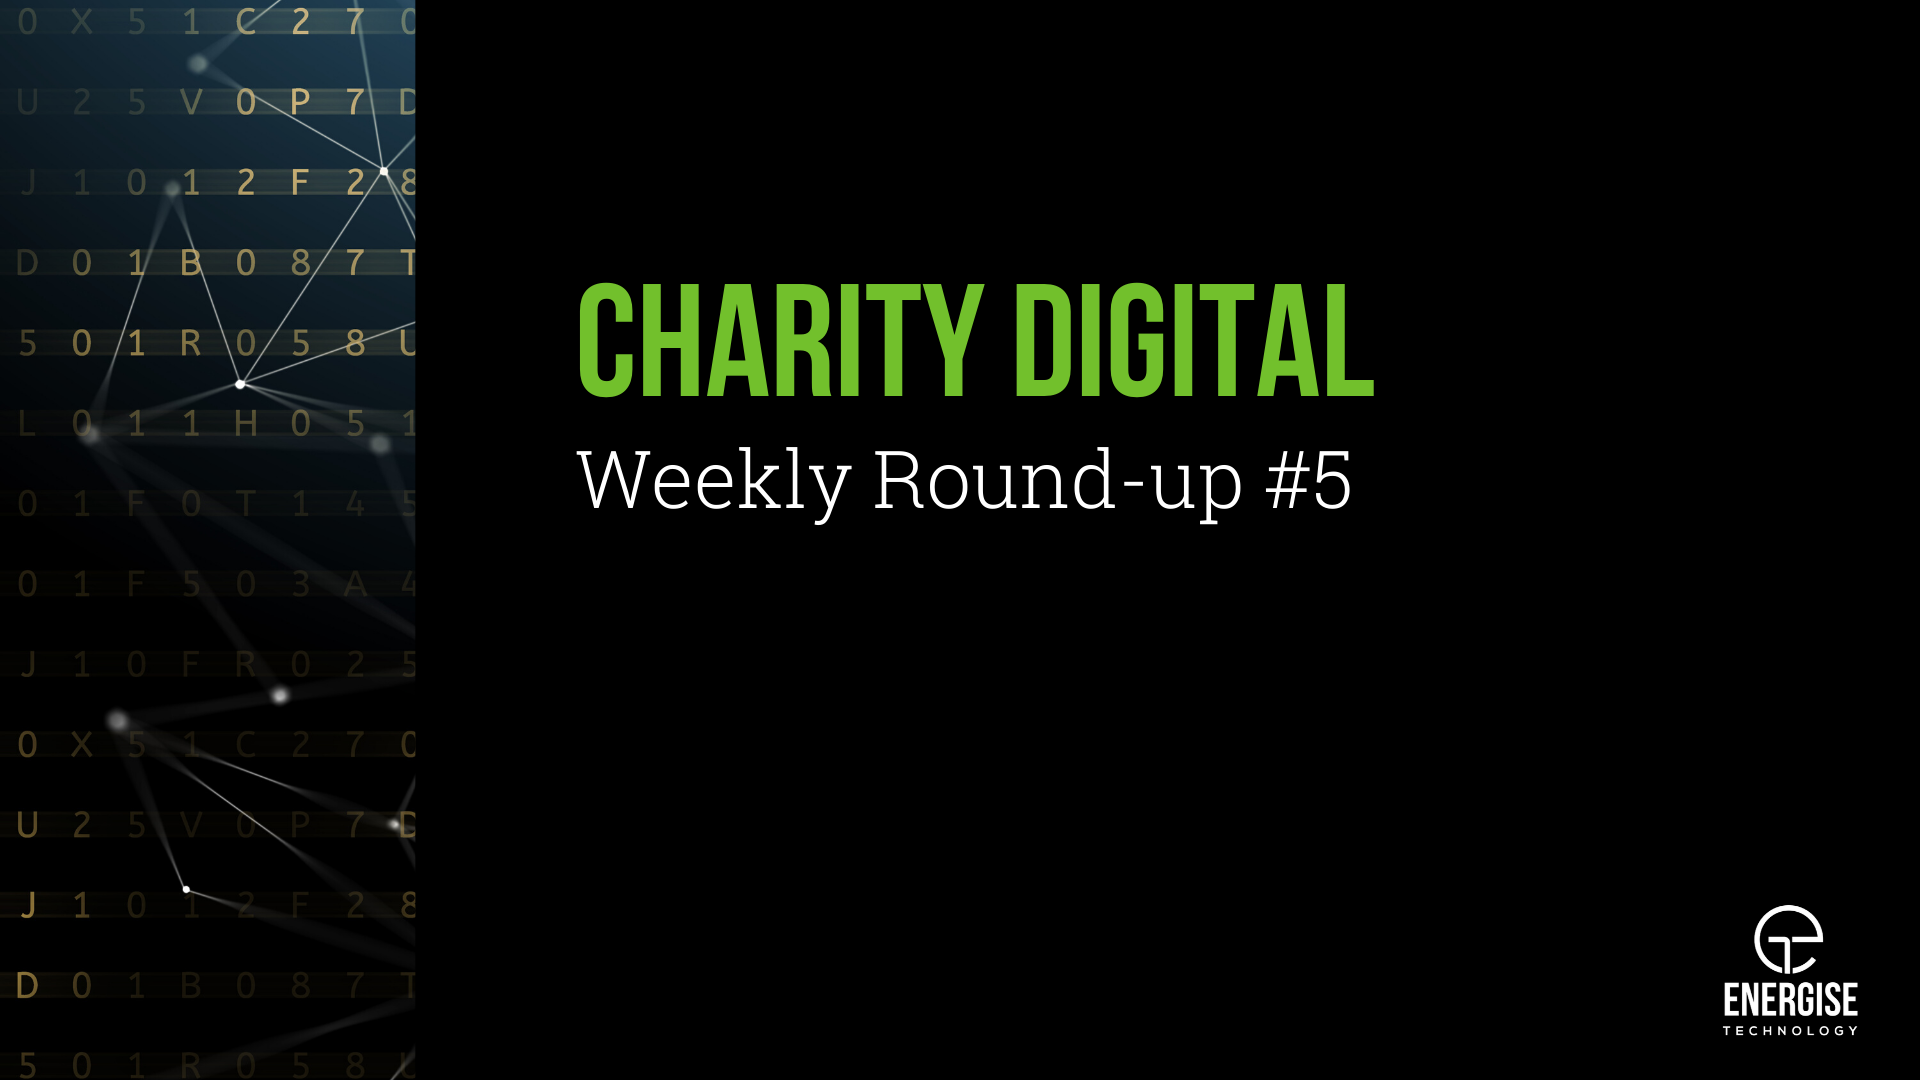 Charity Digital Weekly Roundup #5